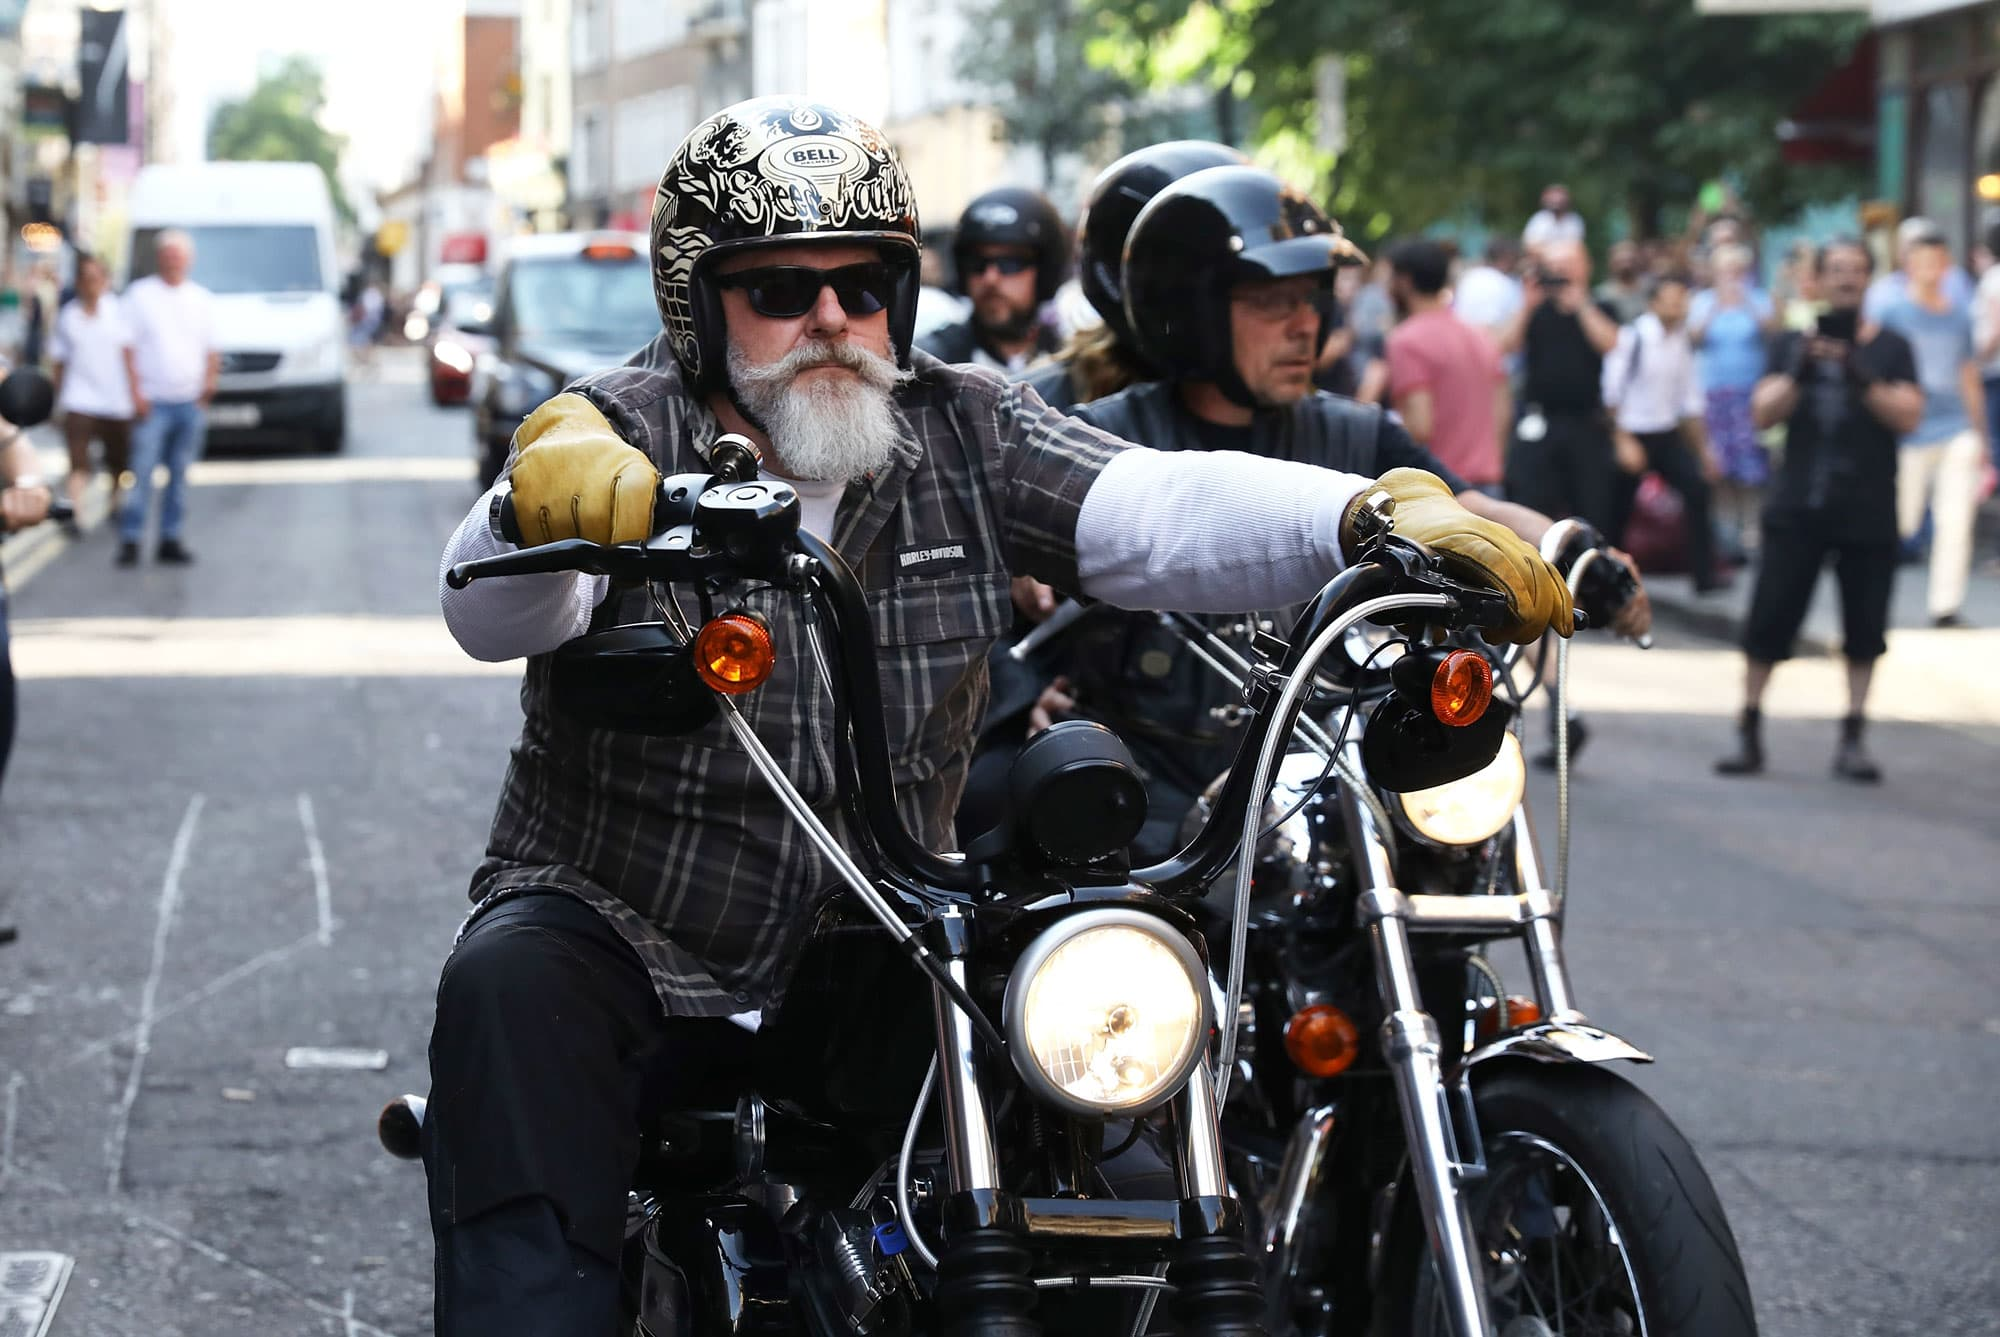 Millennials may claim another victim: Harley-Davidson and the classic American motorcycle